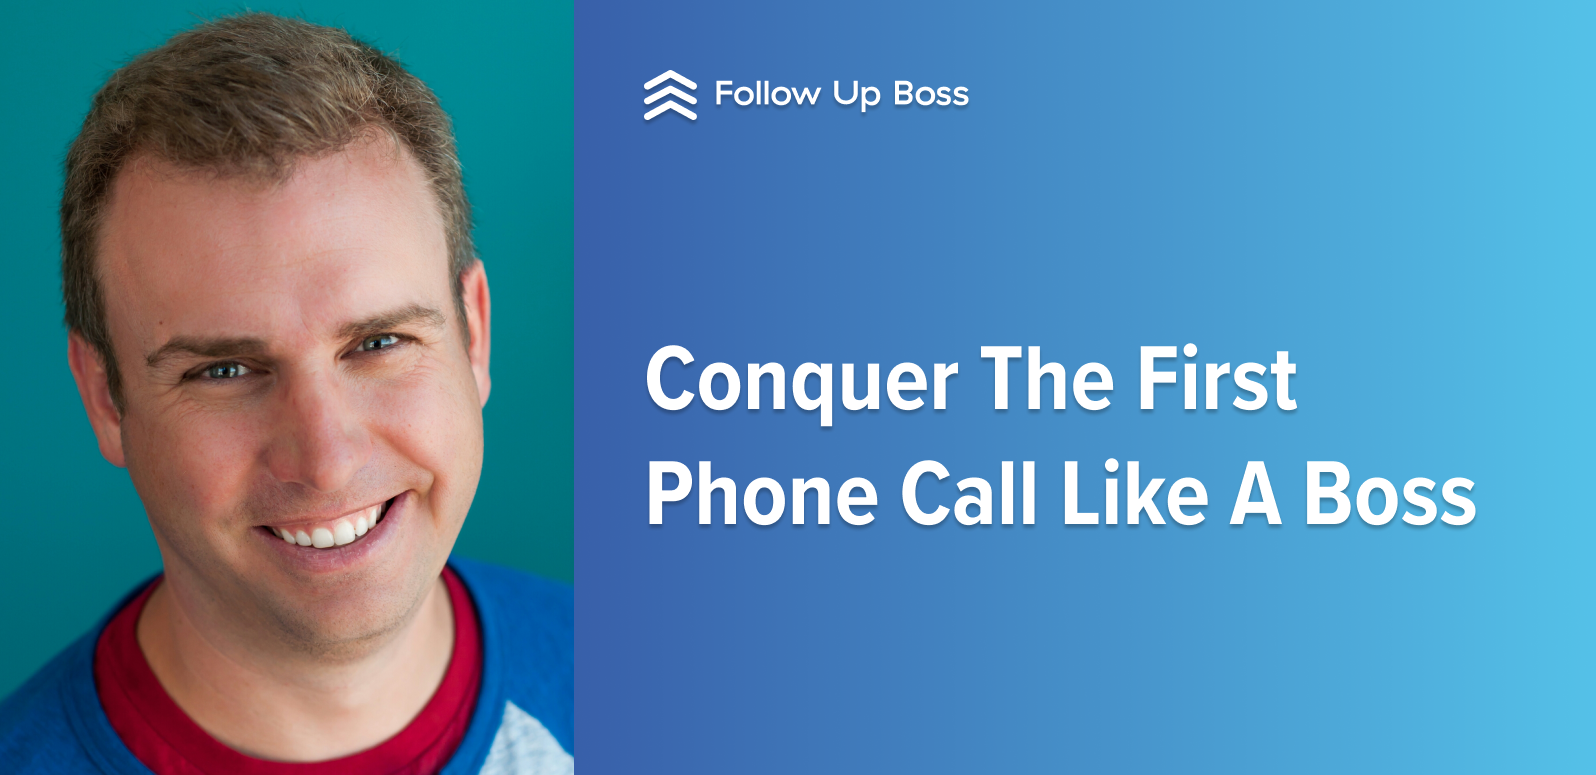 Conquer The First Phone Call Like A Boss